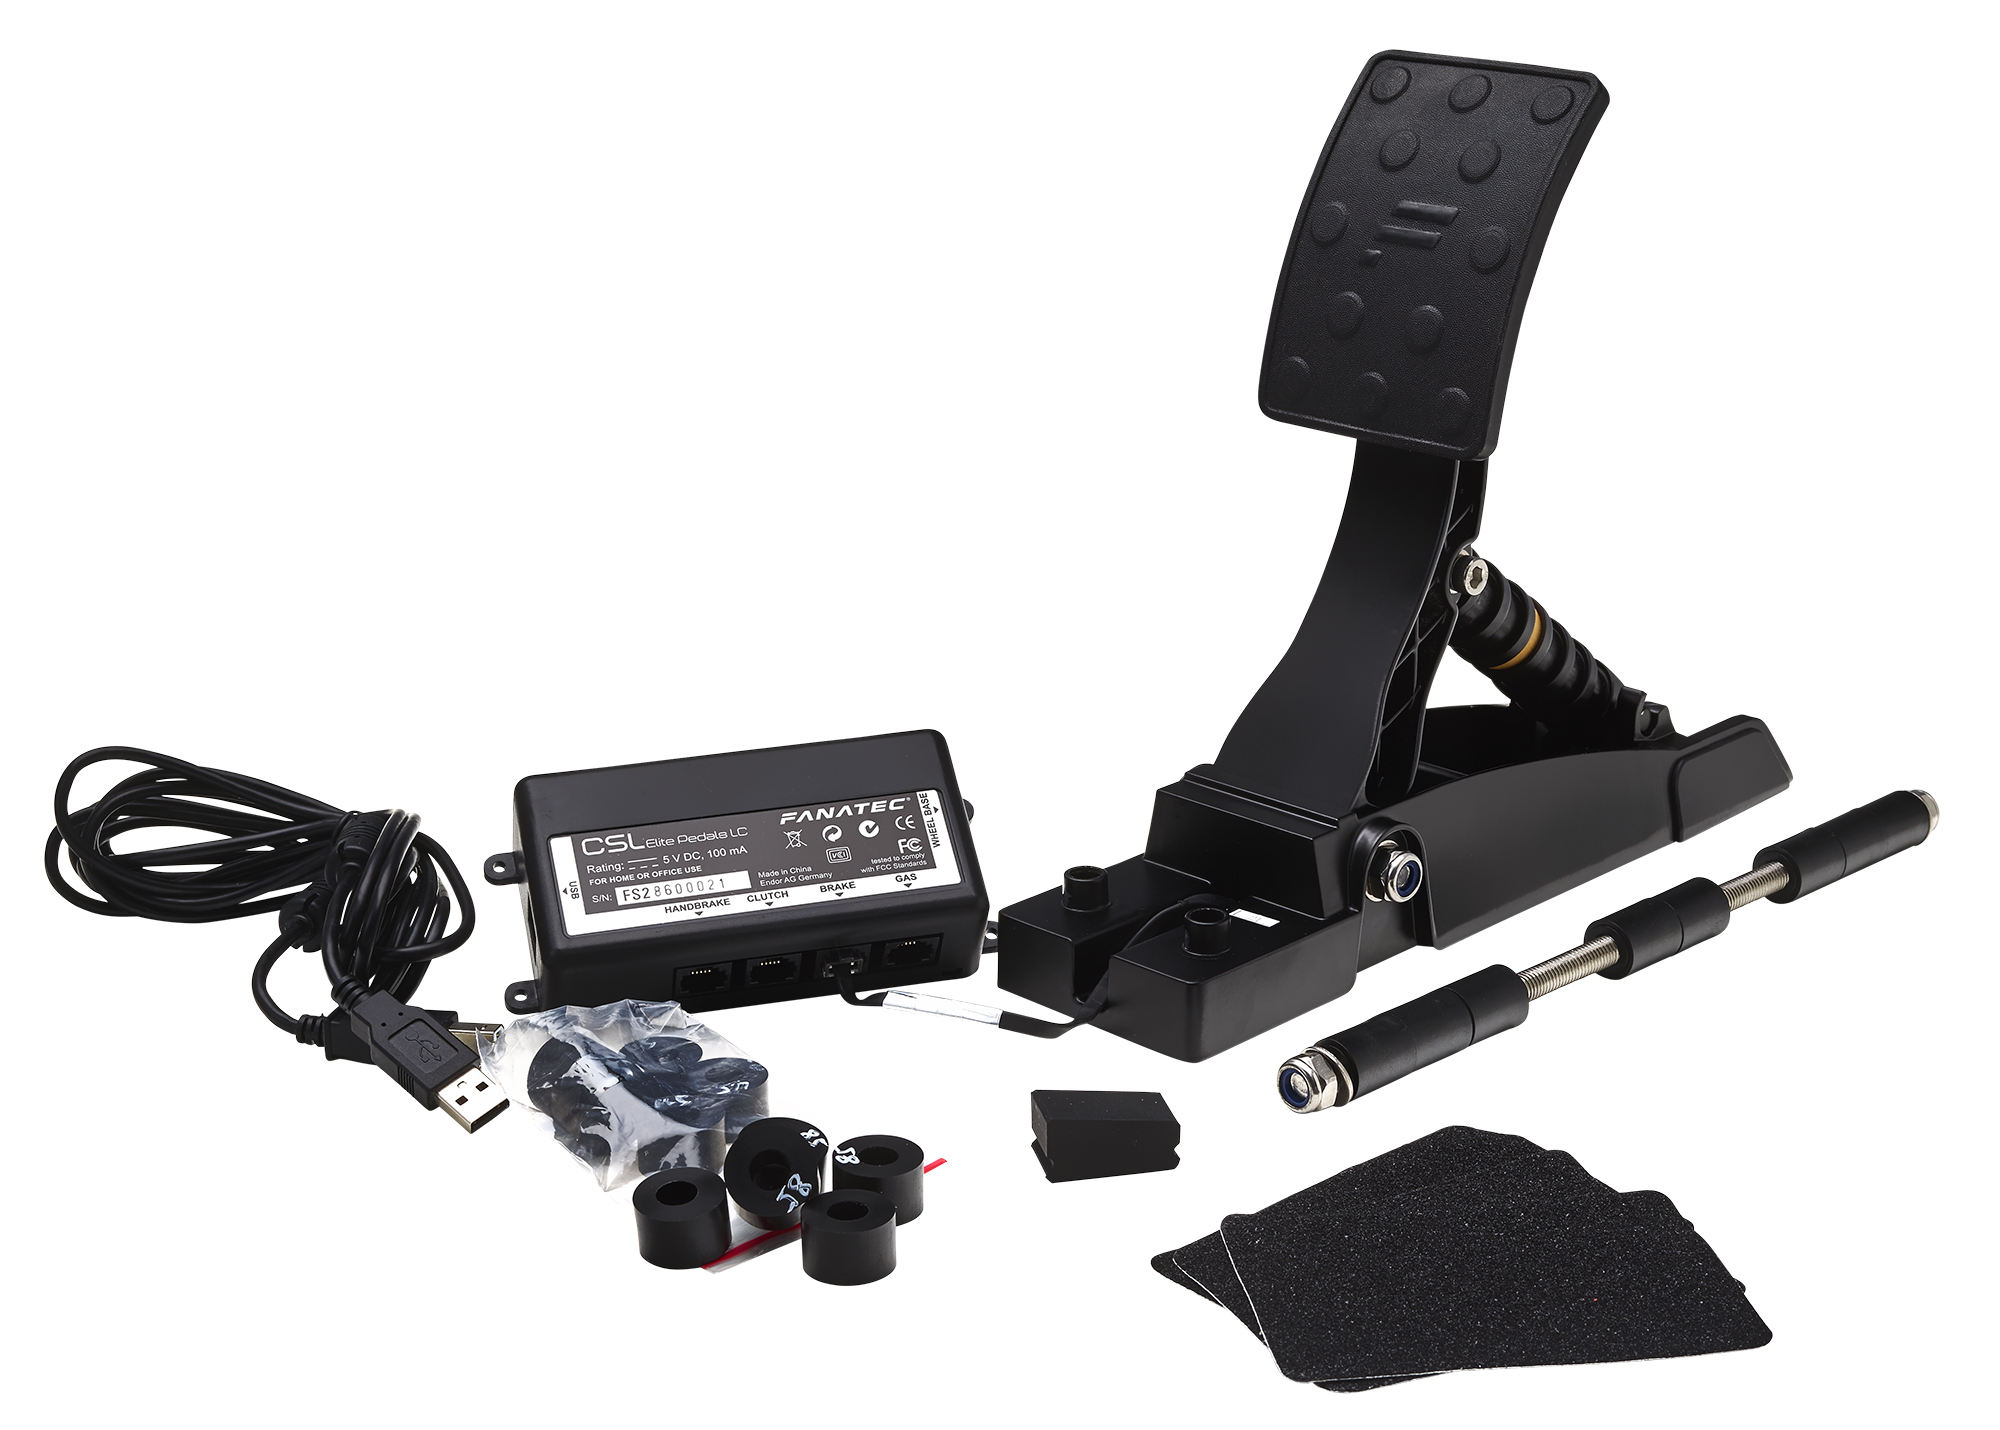 test du p dalier fanatec csl elite pedals lc ps4 xbox one pc jvfrance. Black Bedroom Furniture Sets. Home Design Ideas